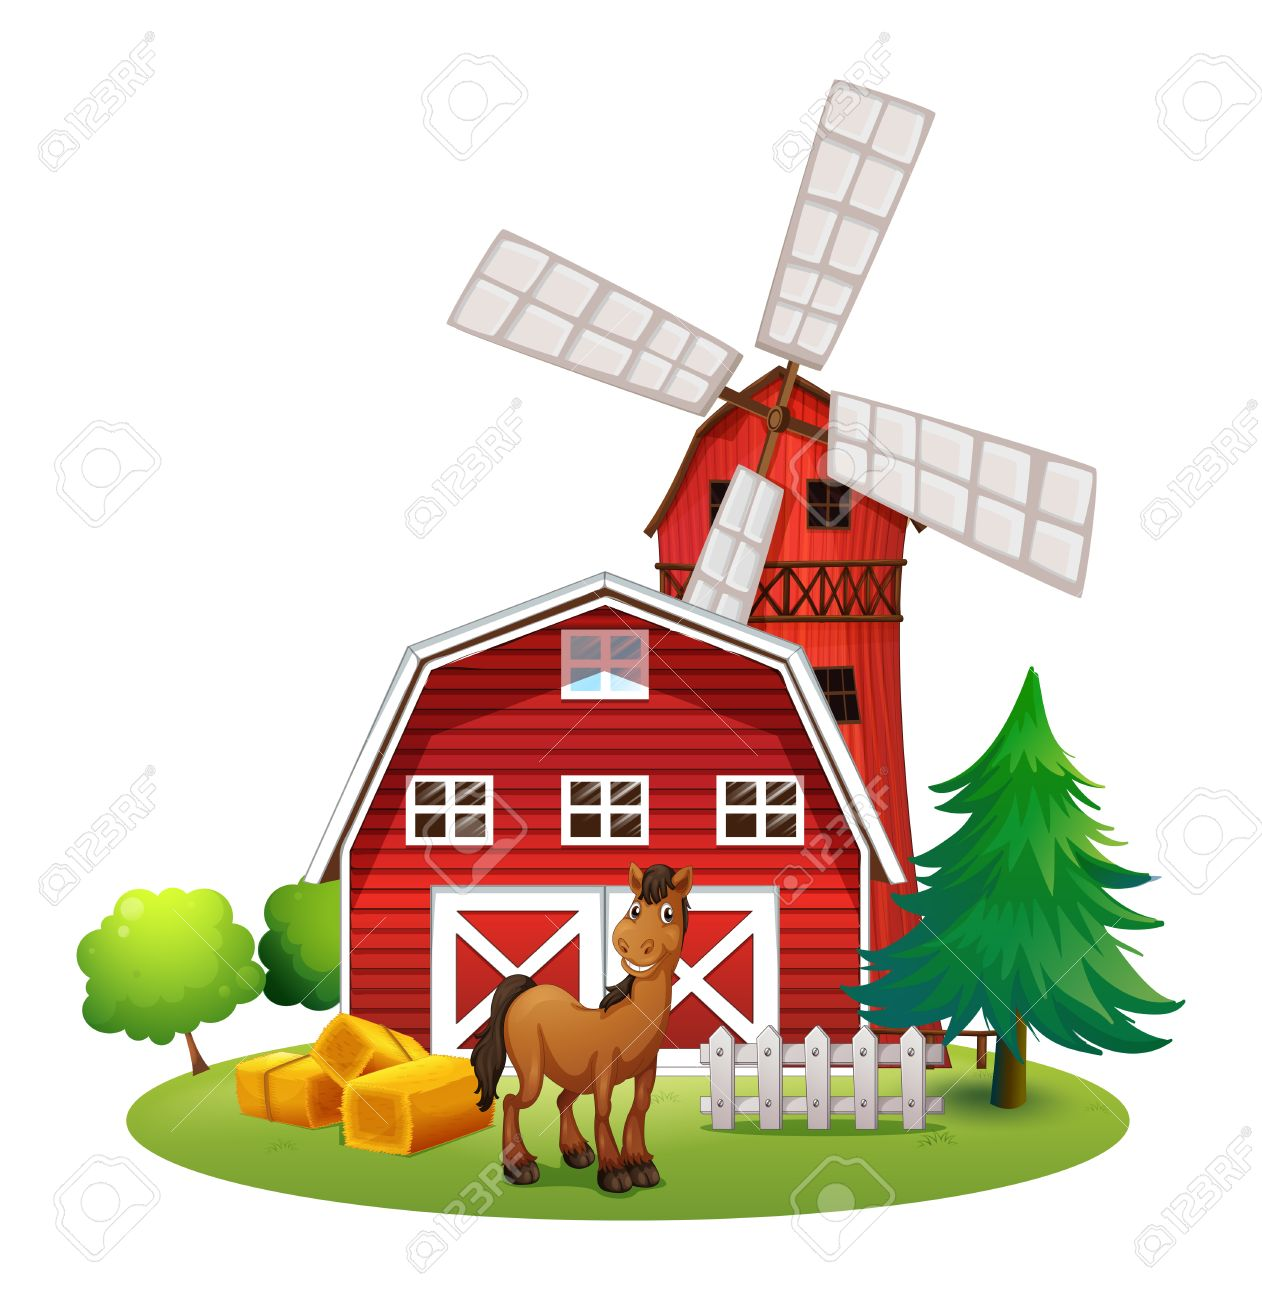 Cartoon red barn doors - Red Barn Door Illustration Of A Smiling Horse Outside The Red Barnhouse With A Windmill